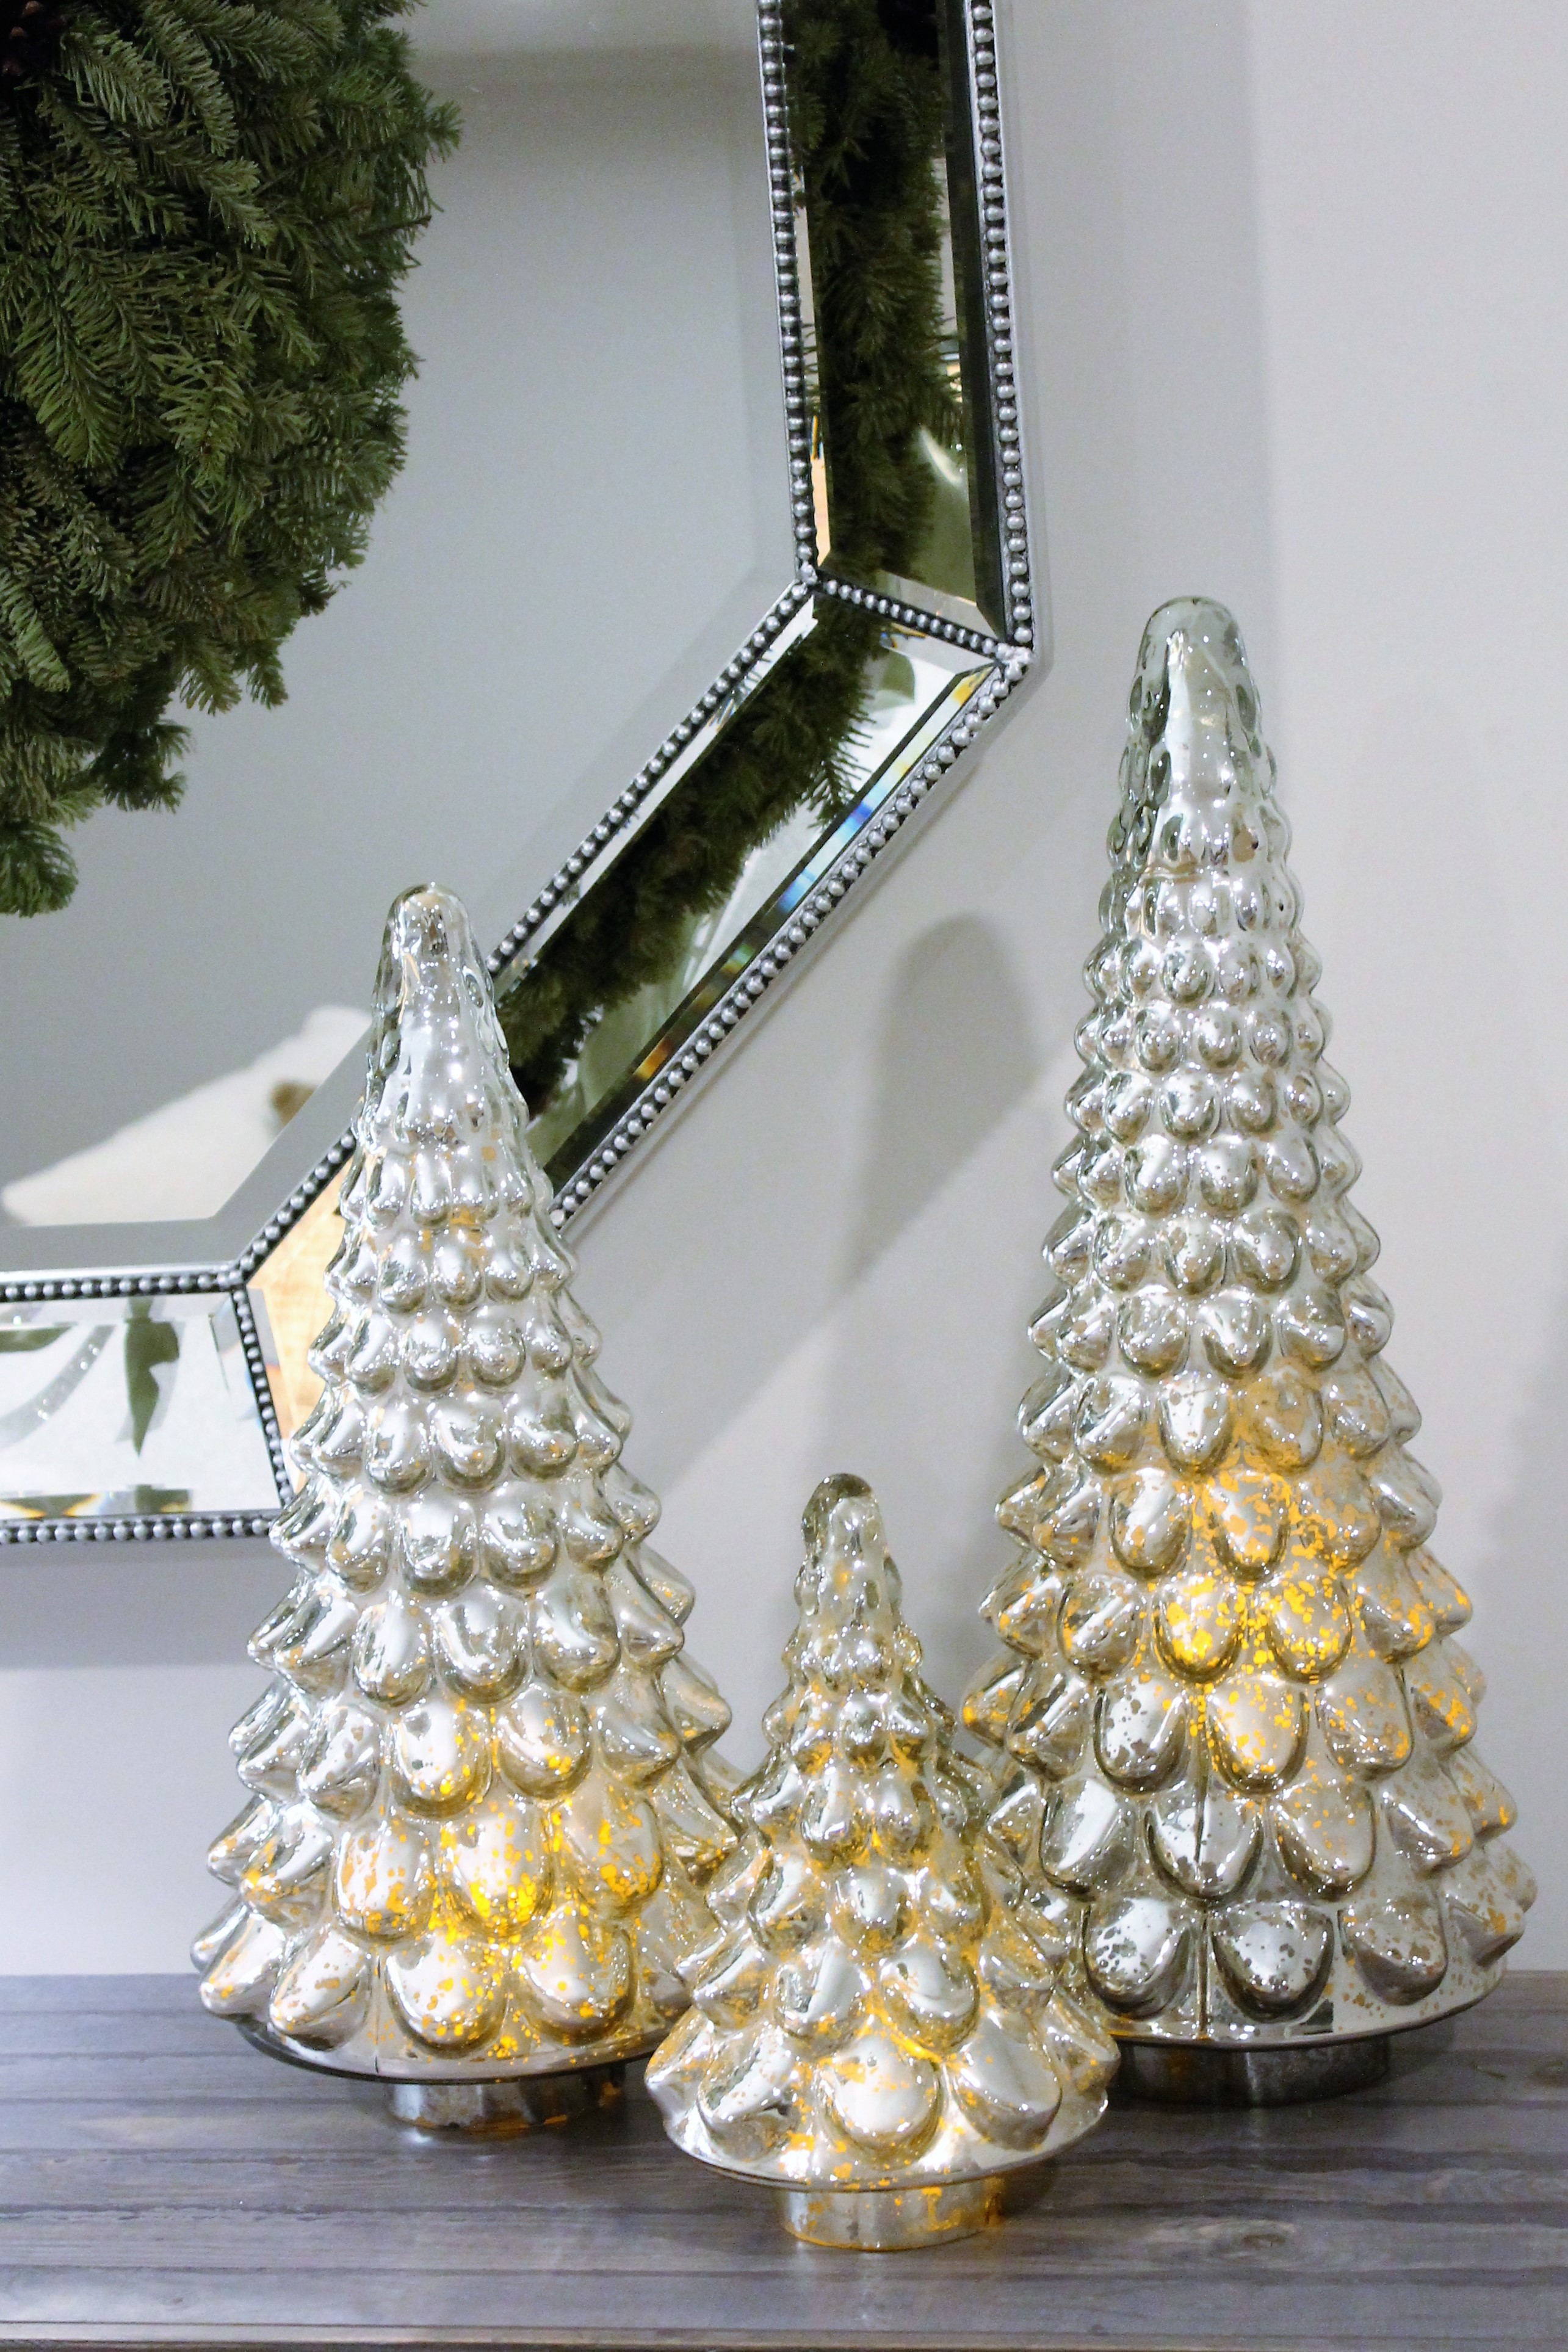 15 Fabulous Pottery Barn Mercury Glass Vase 2021 free download pottery barn mercury glass vase of mercury and silver ornaments pinecones silver garland and fake intended for i added three pottery barn mercury glass trees led flickering candles are place